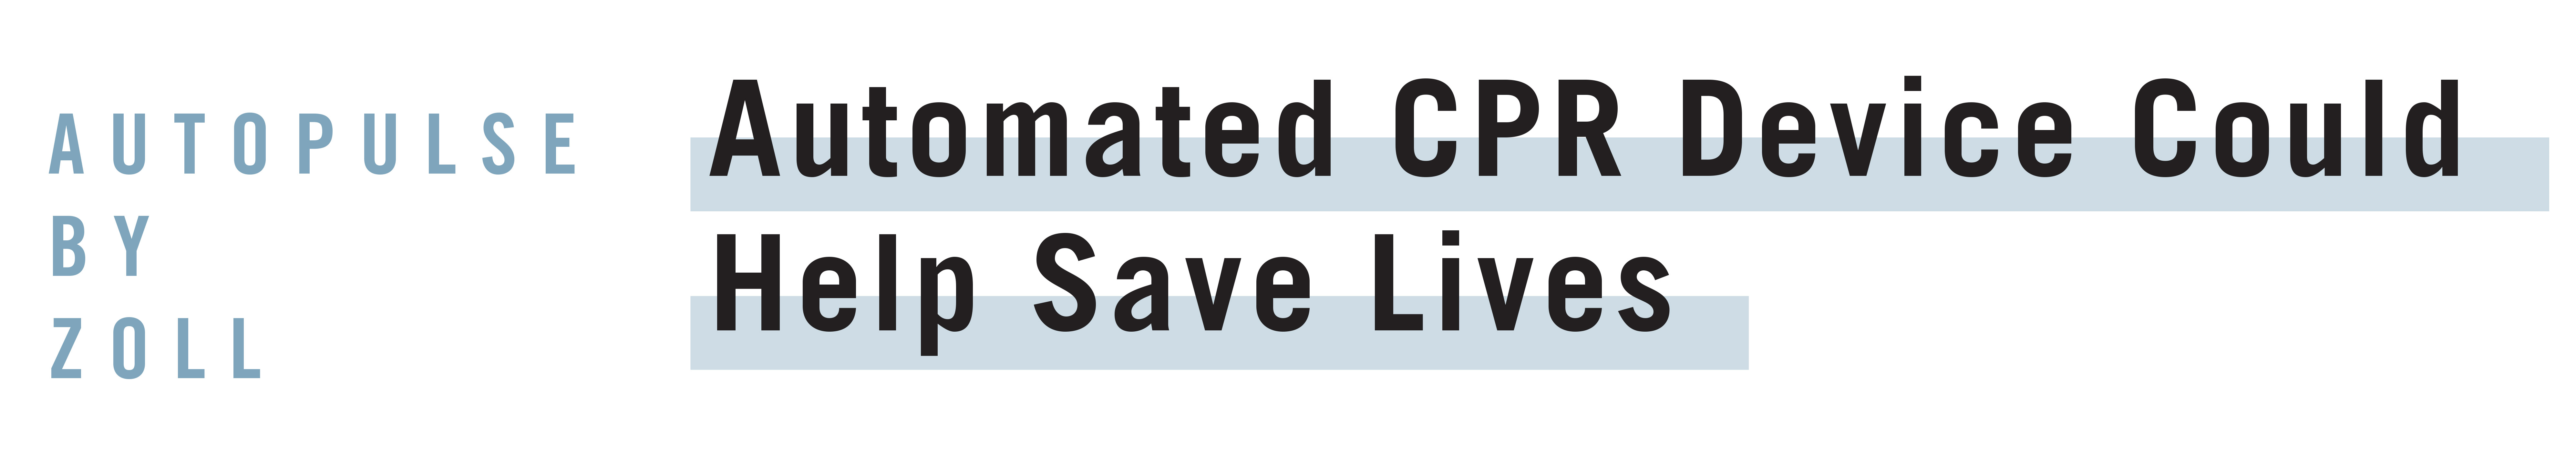 CPR device